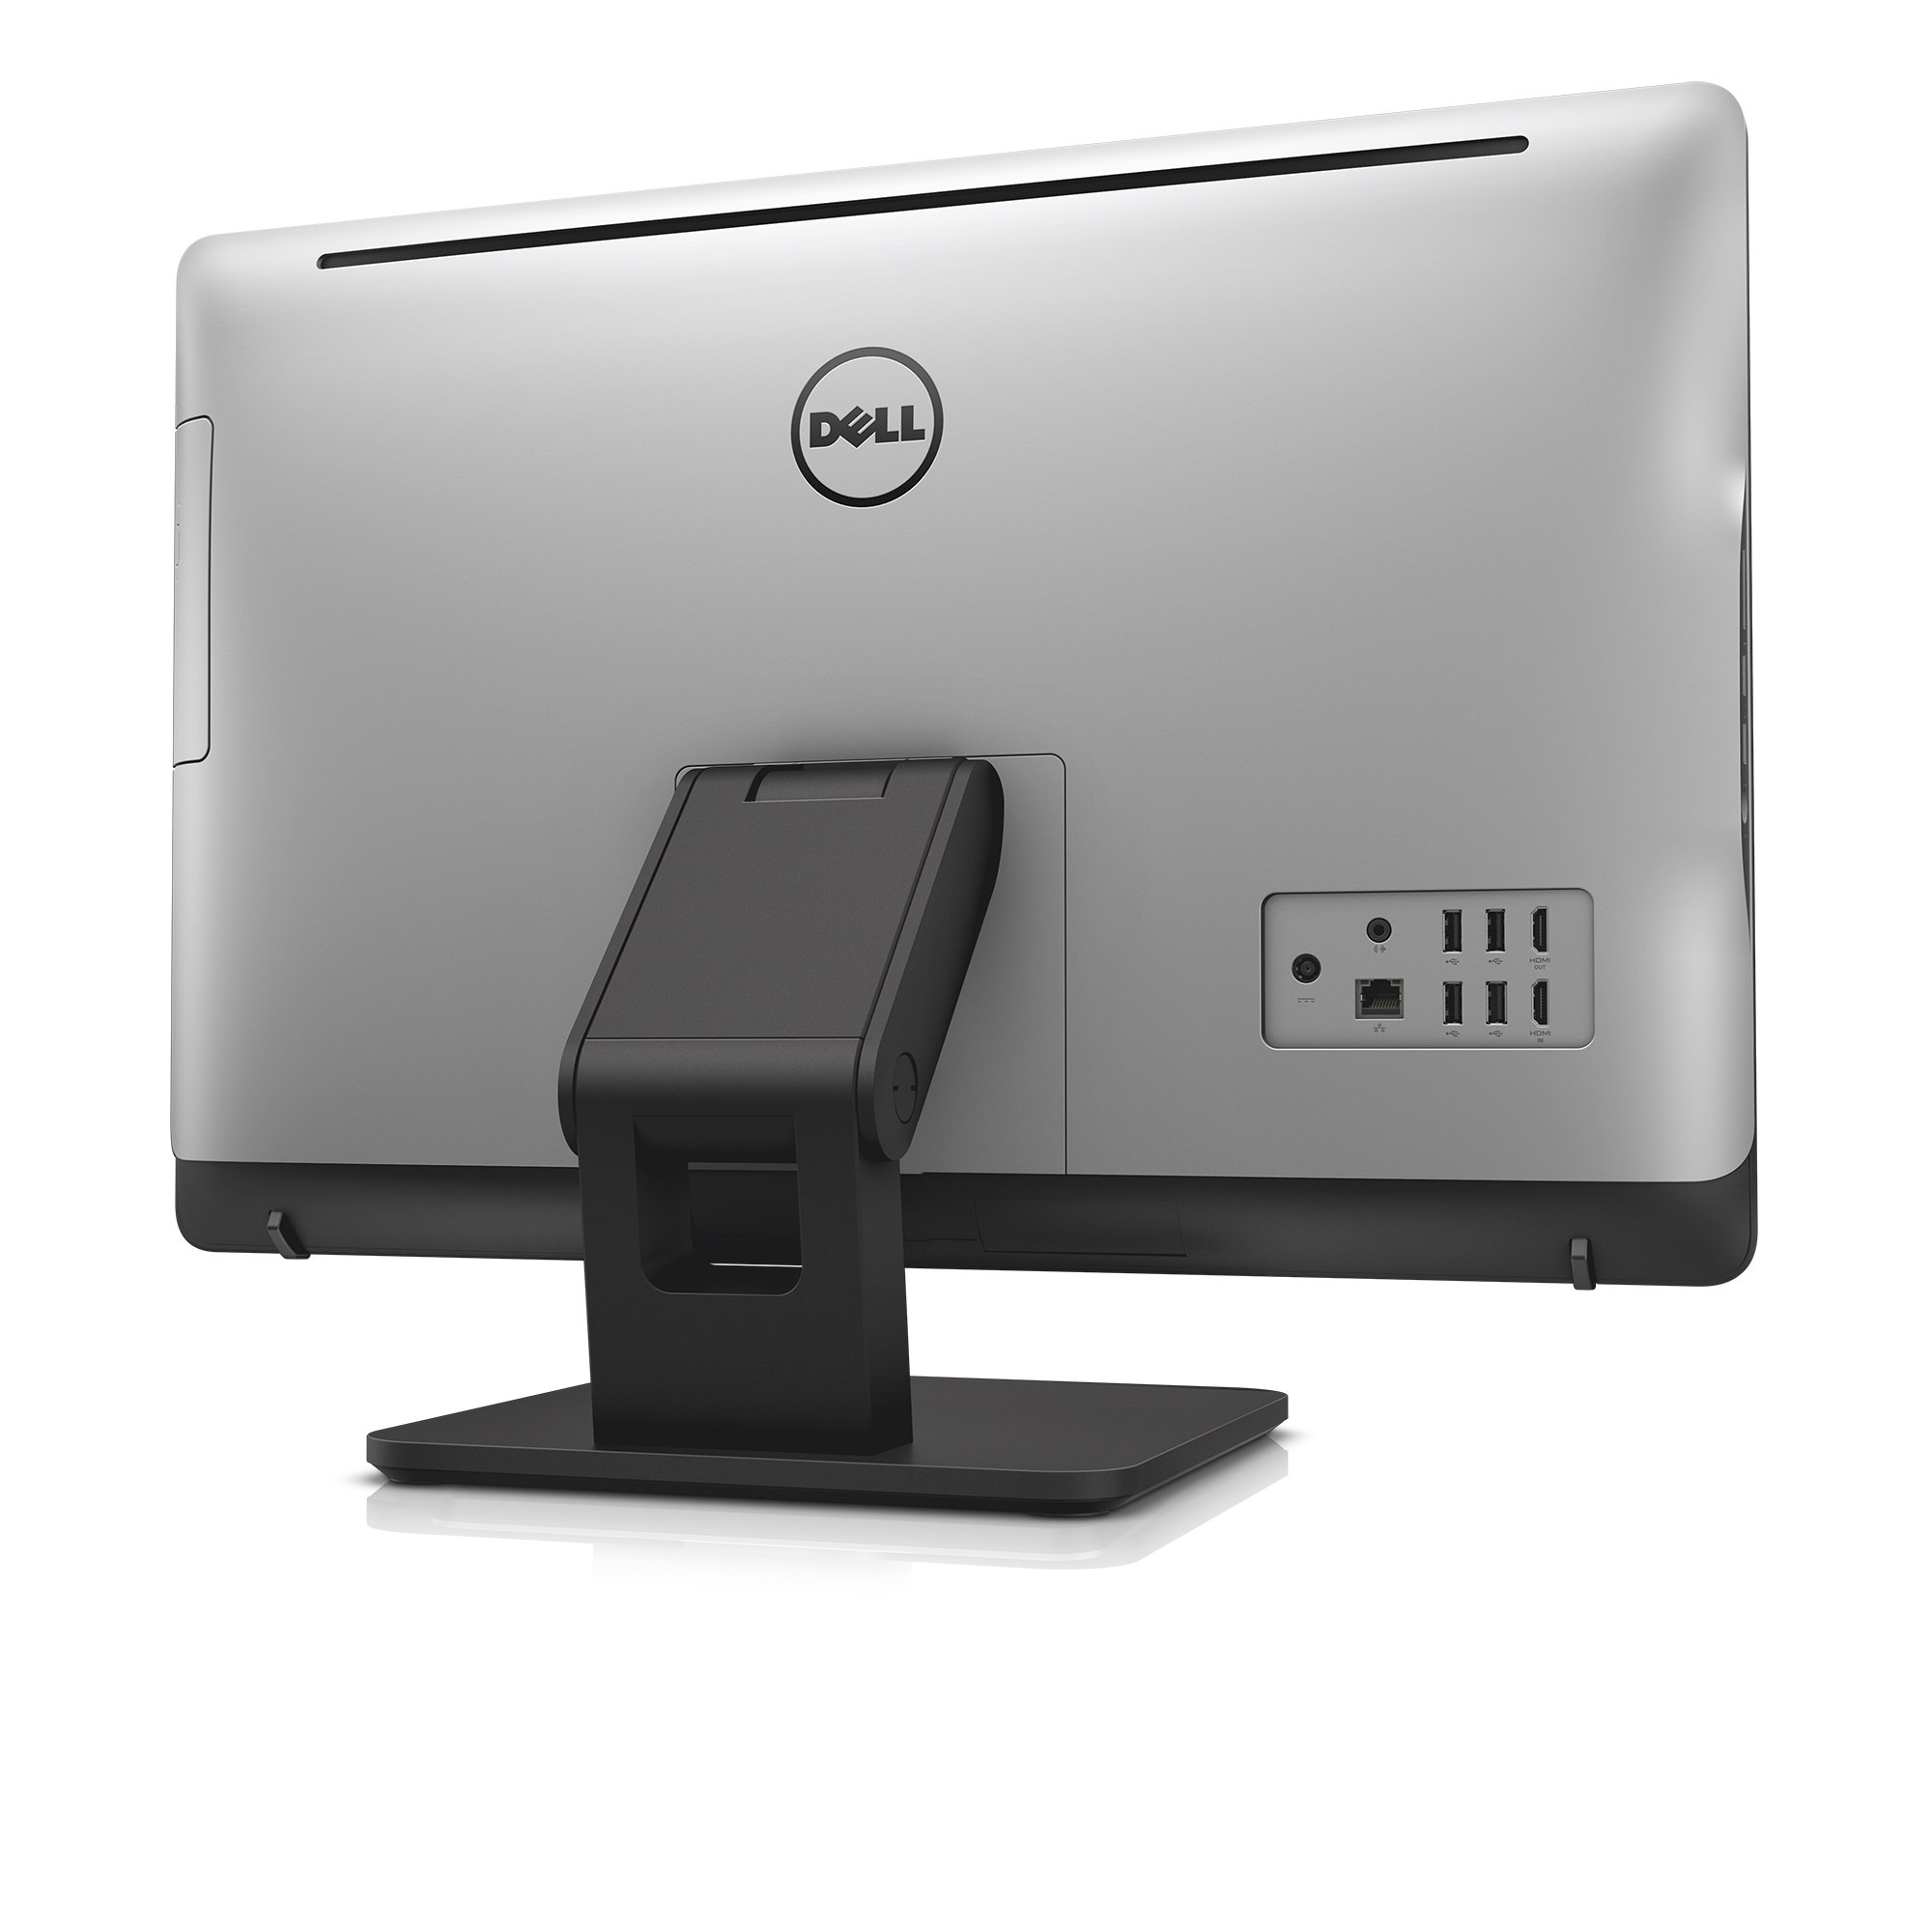 Dell Inspiron i5459-4020BLK 23.8 Inch All in One (Intel Core i5, 12 GB RAM, 1 TB HDD, Silver Cover with Black Articulating Stand) by Dell (Image #6)